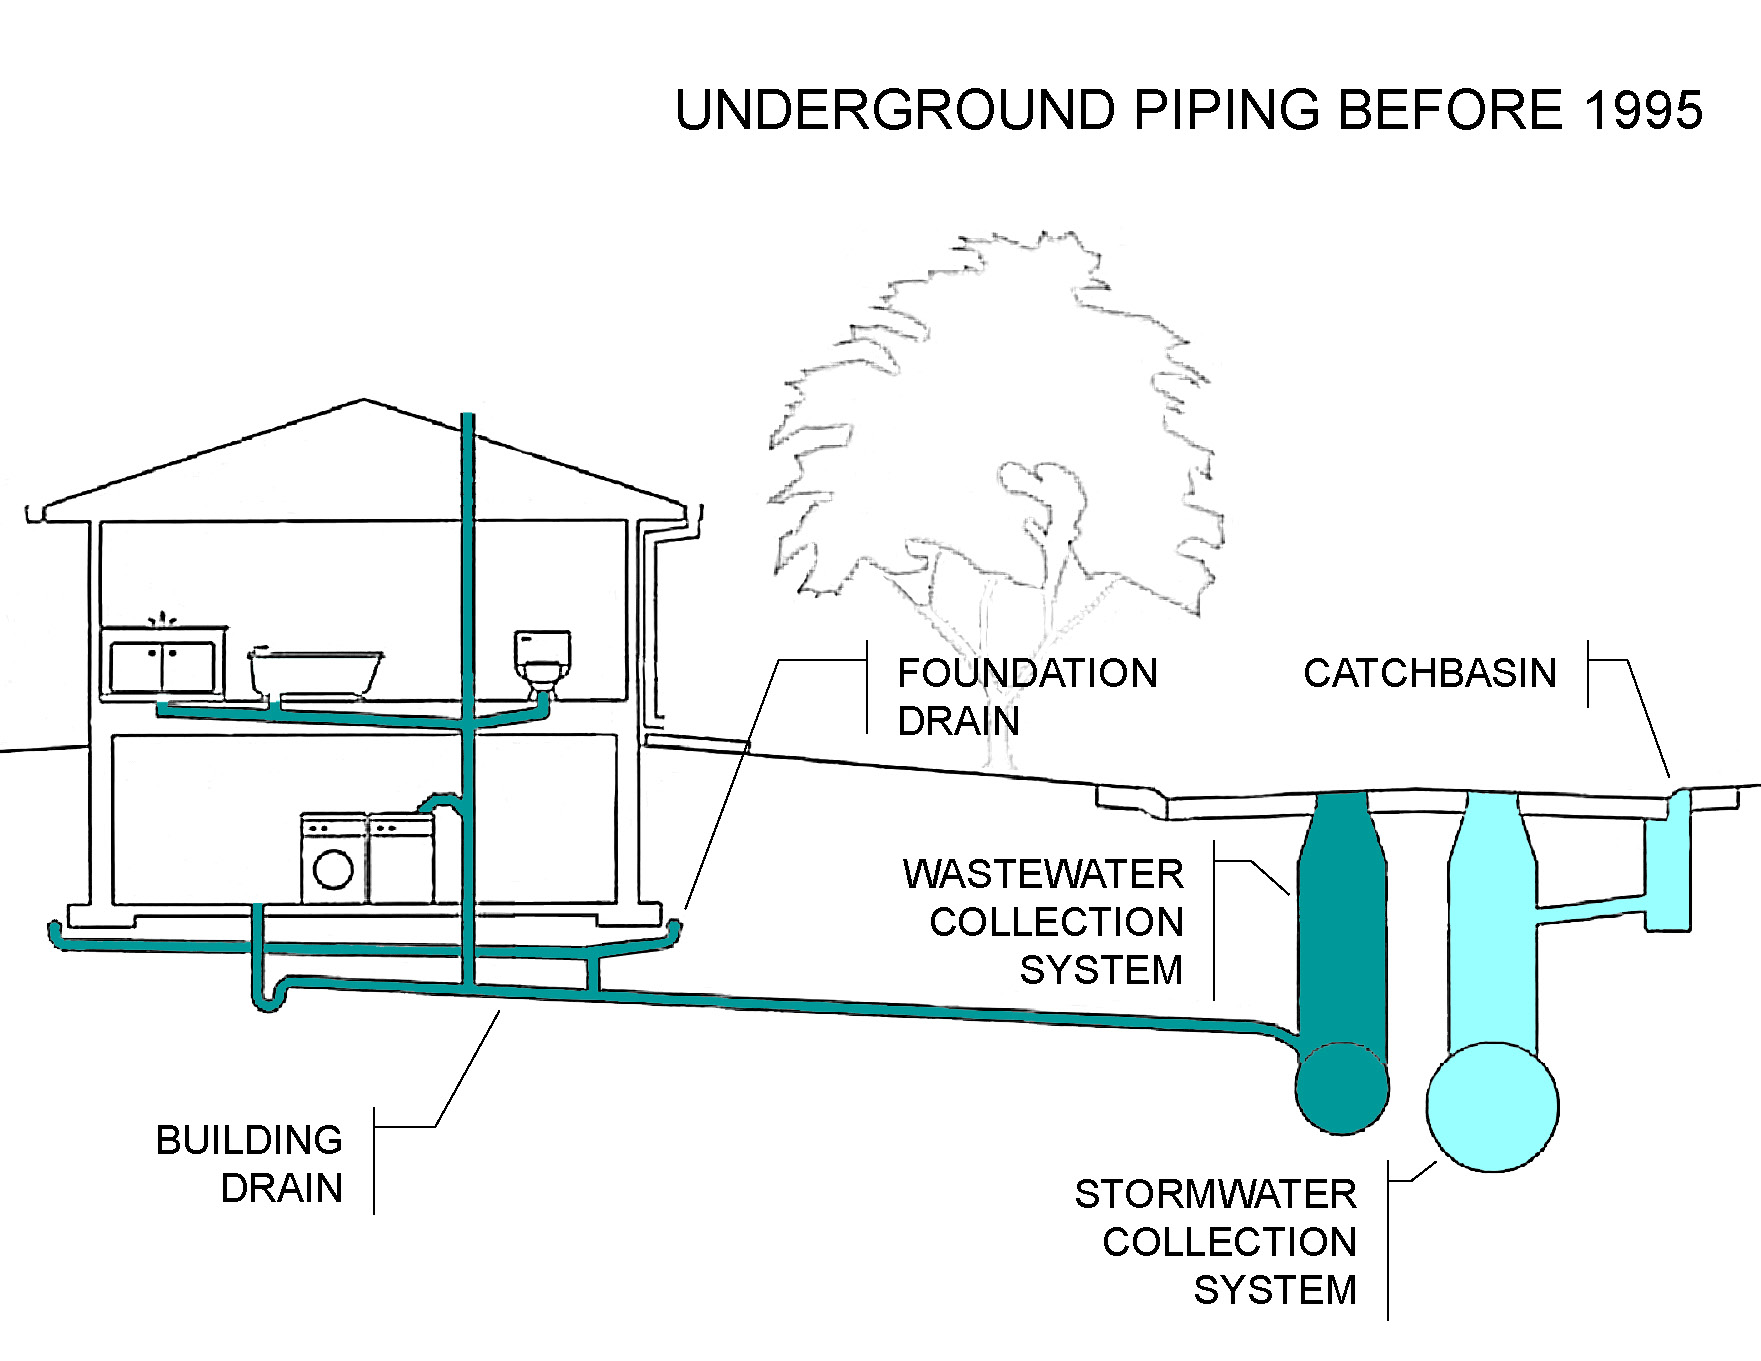 Superieur During Heavy Rains The Wastewater System Can Become Overwhelmed And Cause  Basement Flooding. In Older Areas Of Lethbridge The Wastewater Collection  System ...